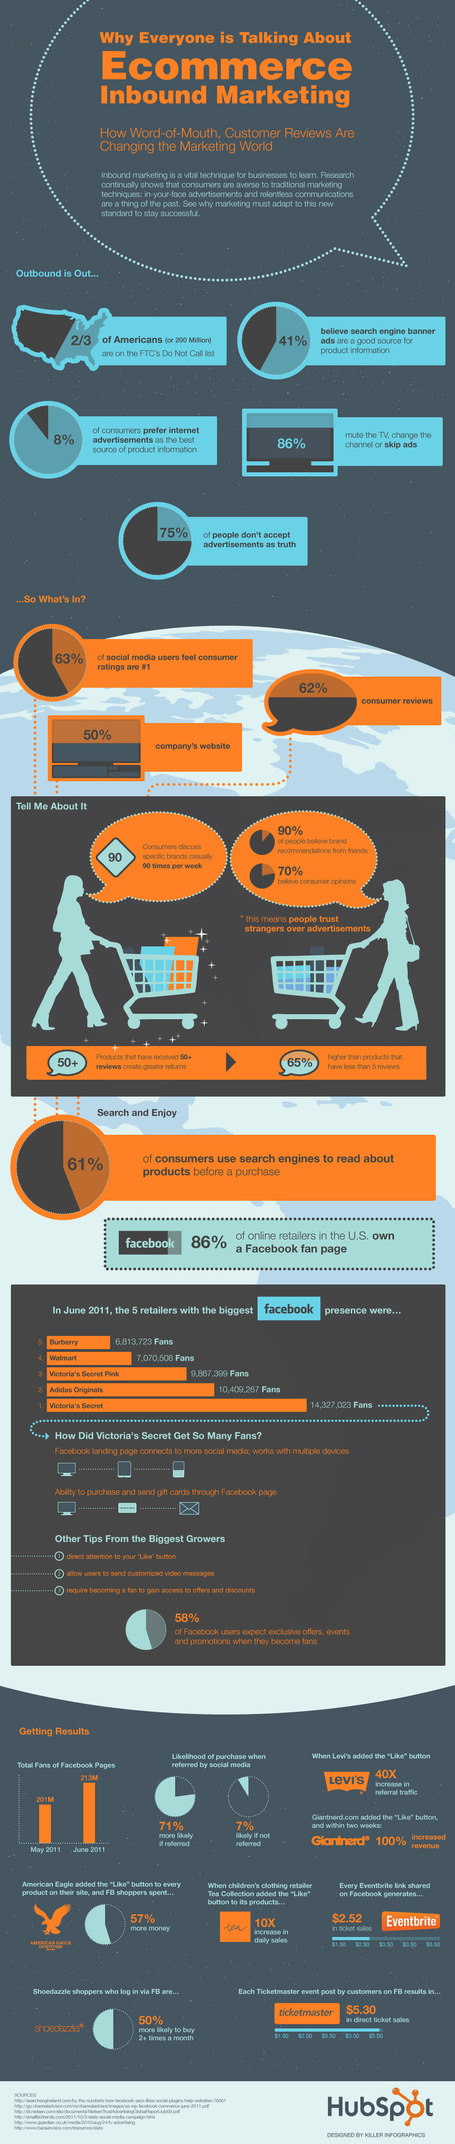 How Does Social Media Affect Purchase Decisions [INFOGRAPHIC] | healincomfort health information | Autour de l'e-commerce | Scoop.it